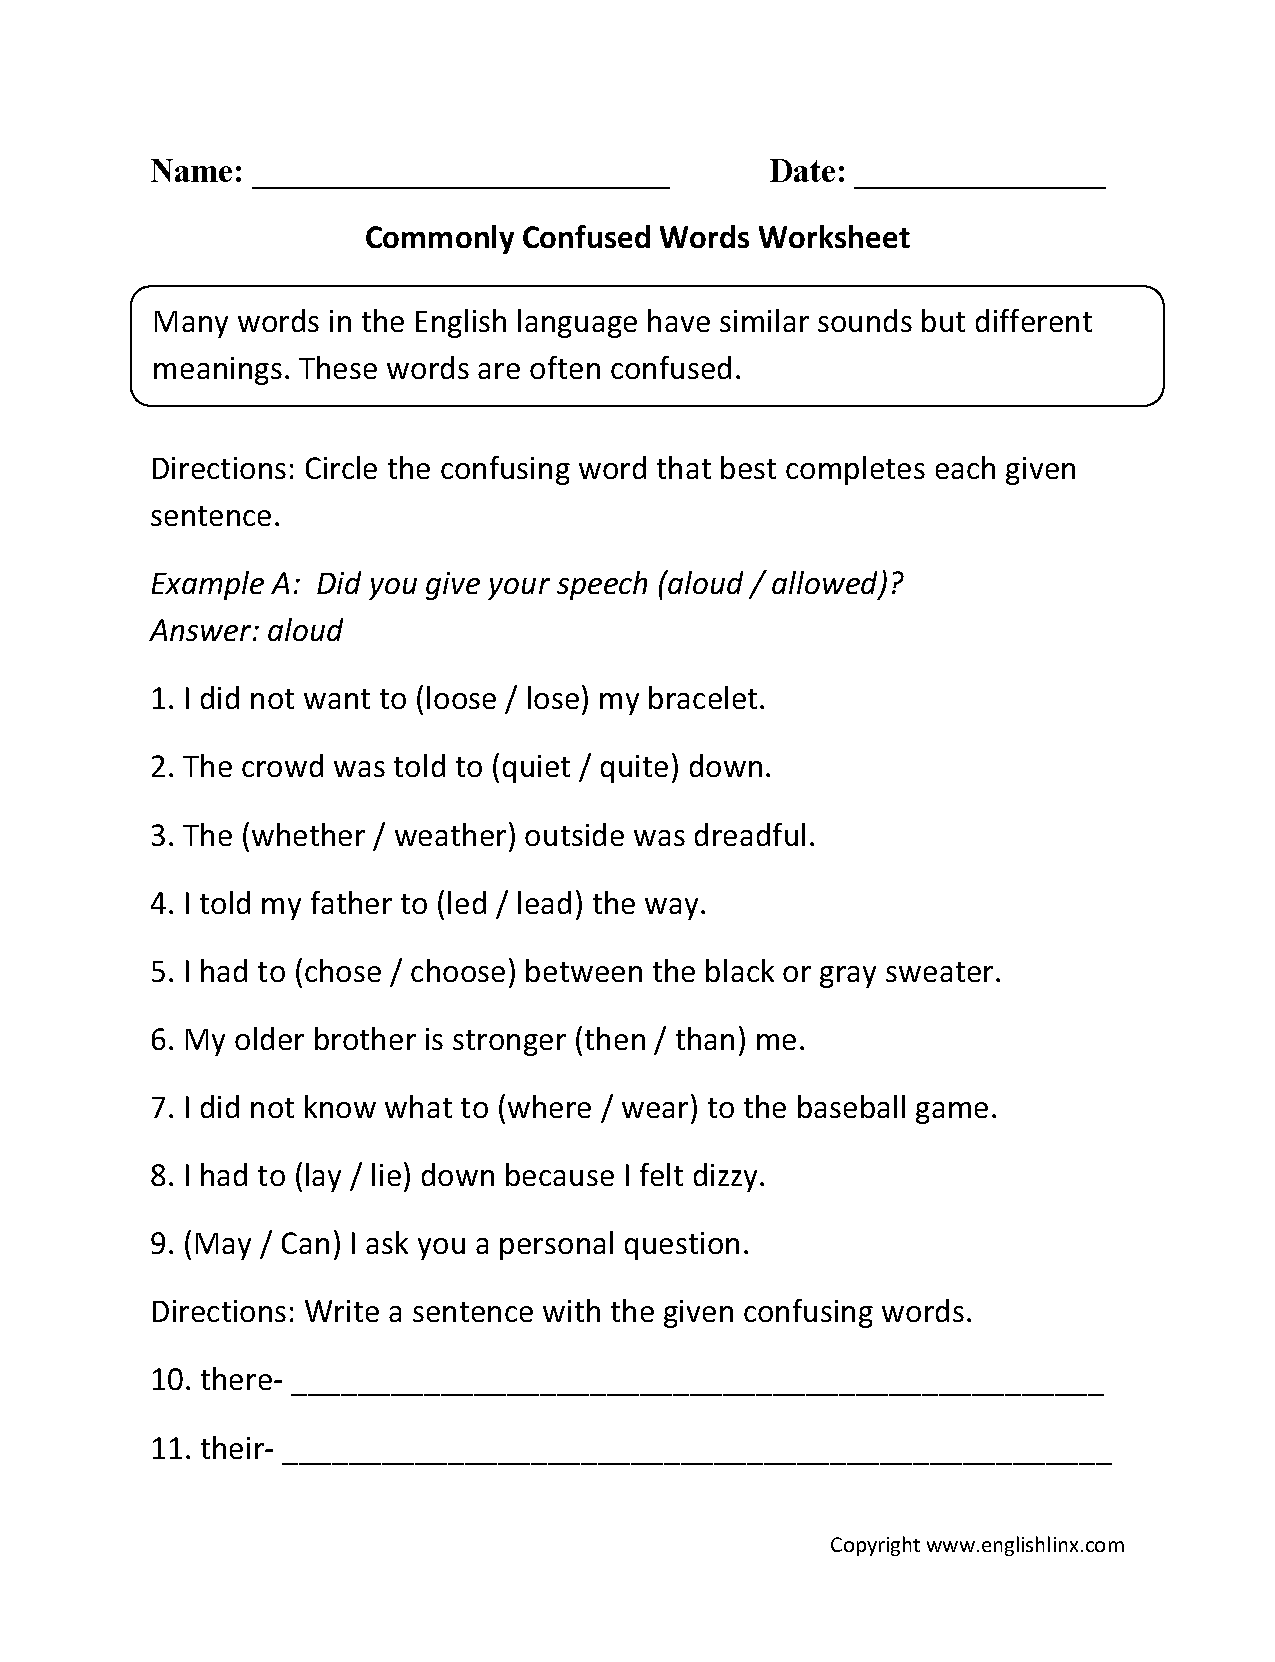 worksheet Commonly Confused Words Worksheet word usage worksheets commonly confused words worksheet